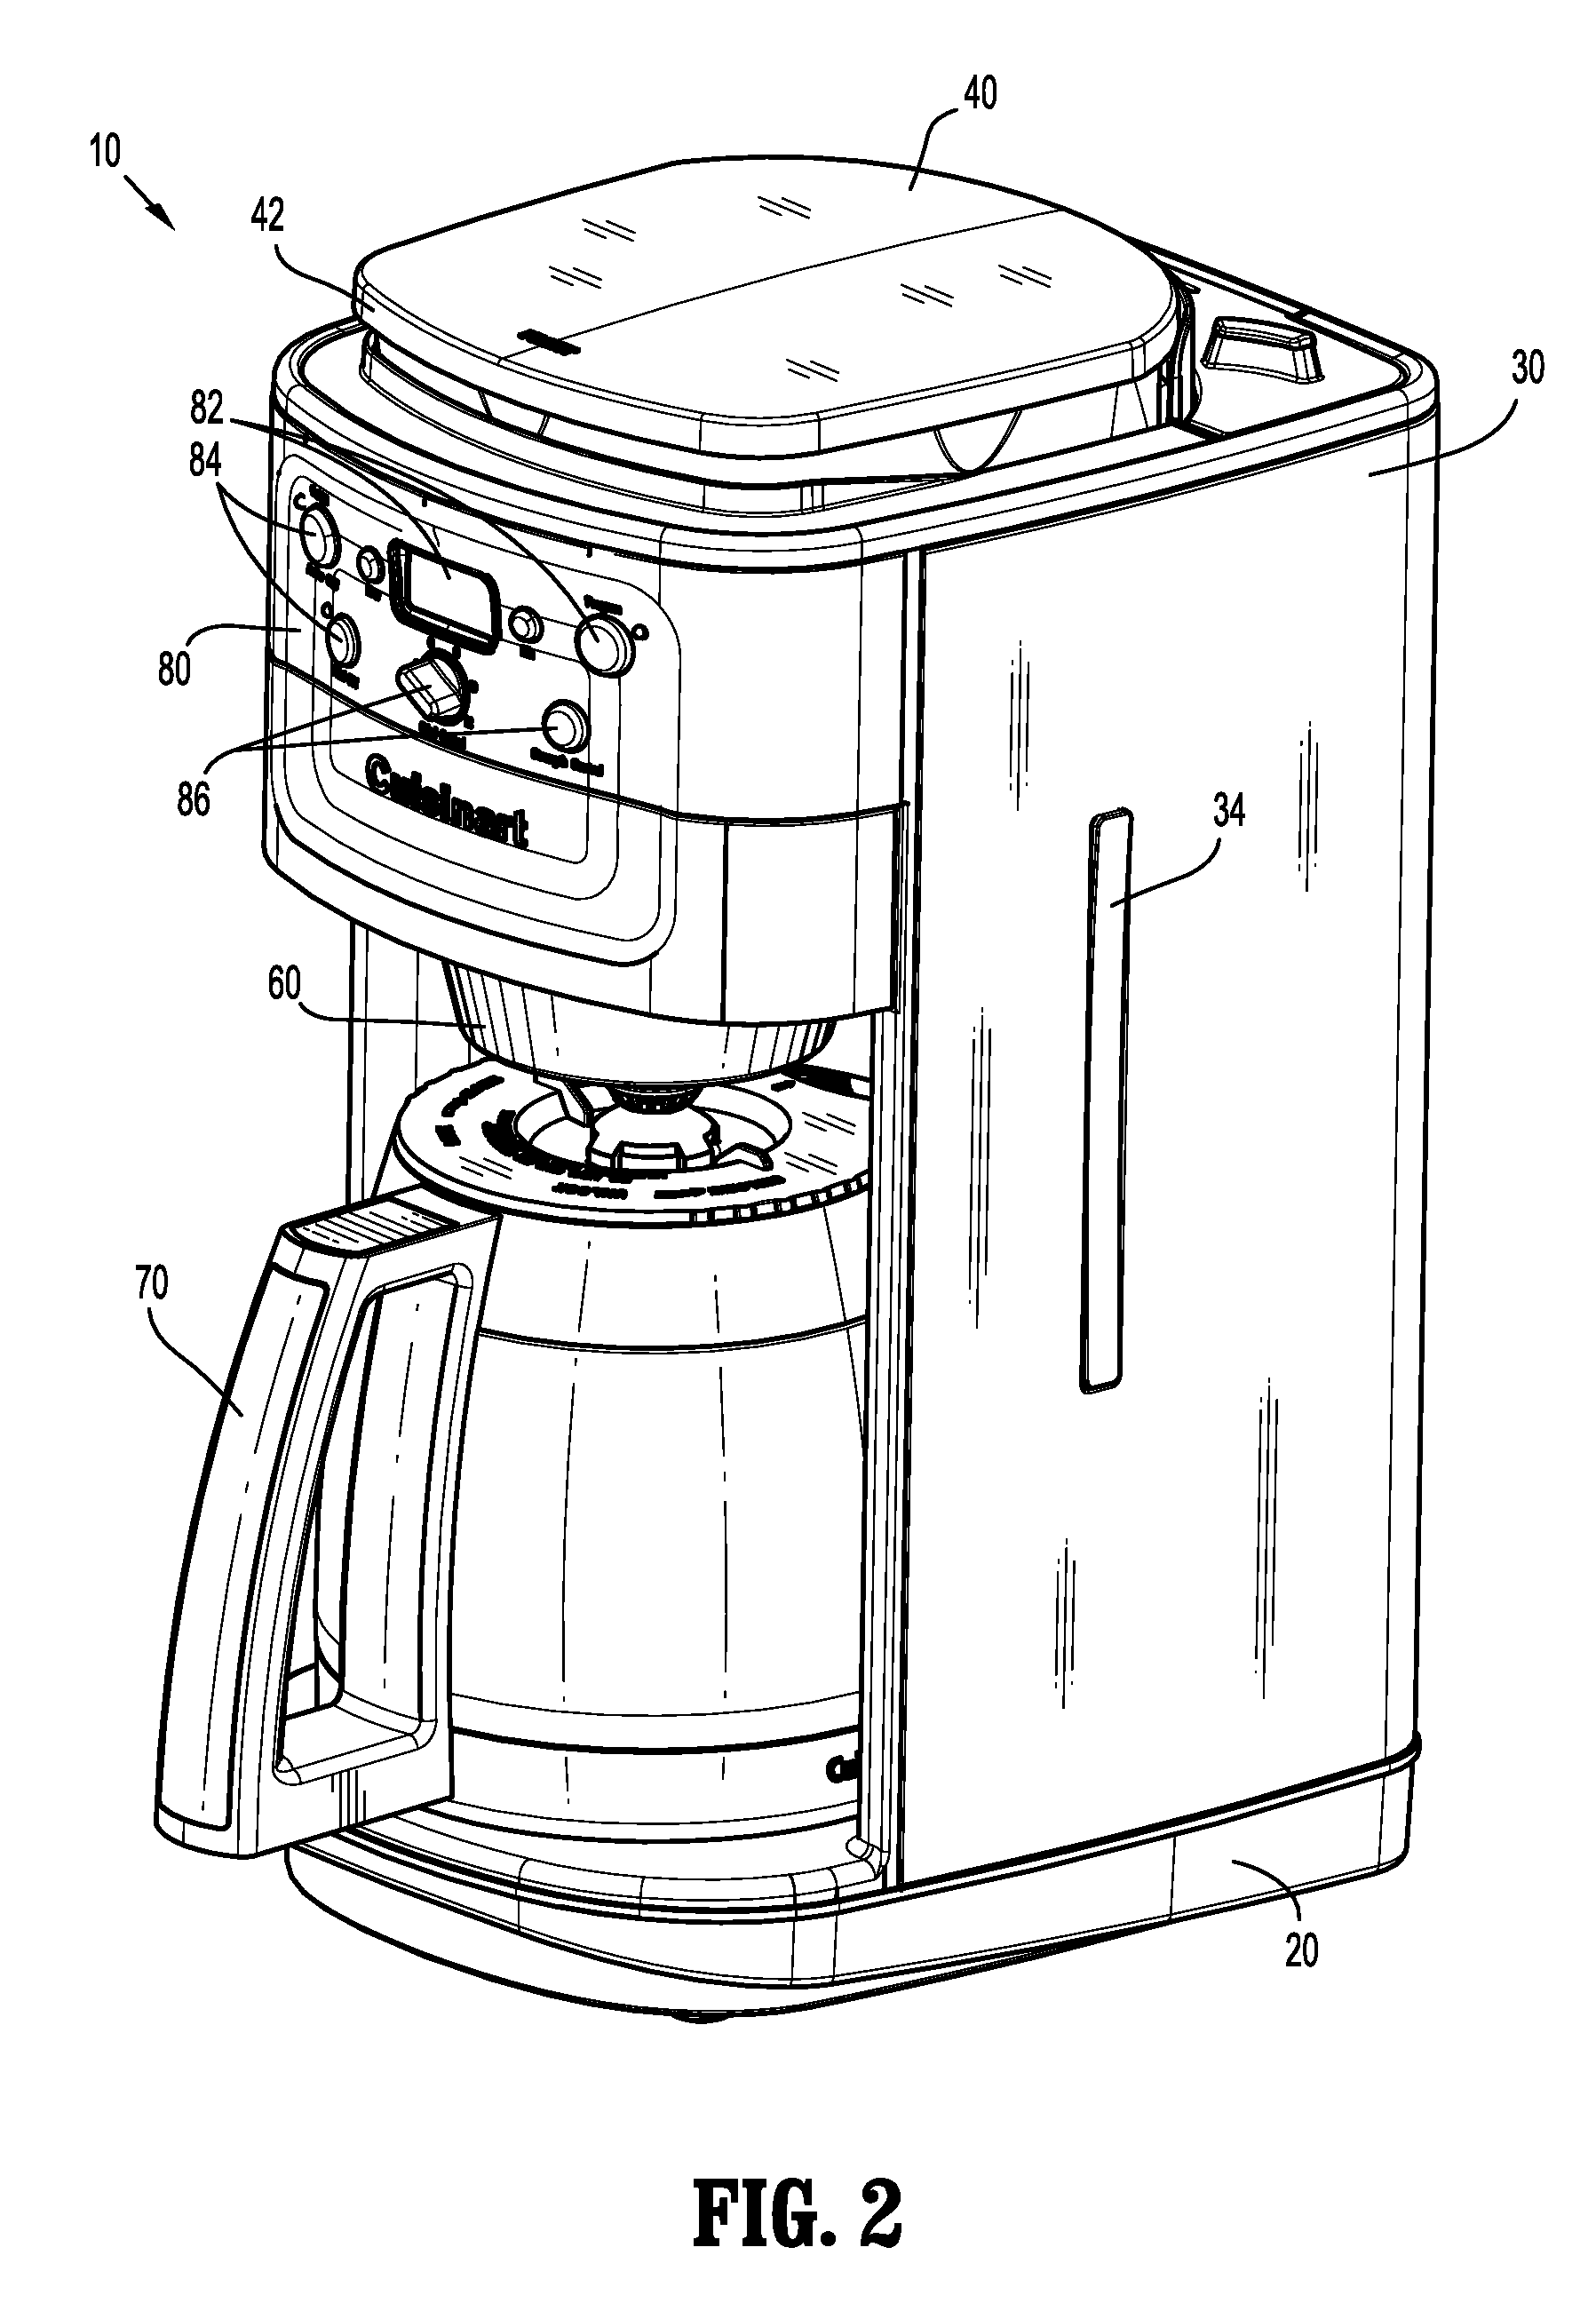 Patent US20090031900 - Coffee maker - Google Patents